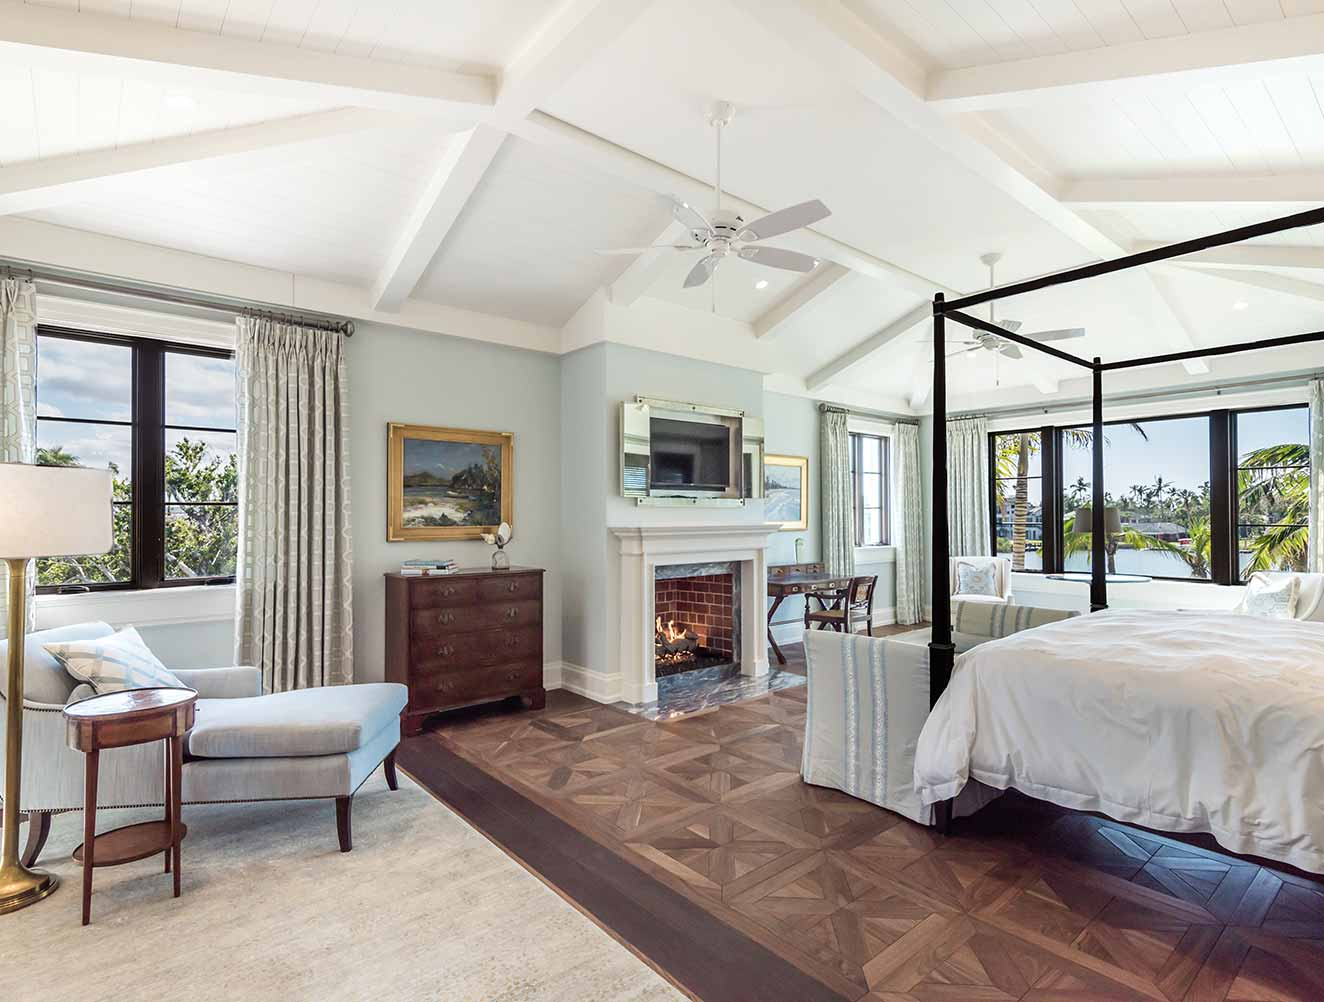 Master bedroom with fireplace and waterfront views in a Naples Florida, single family home. Designed by Kukk Architecture & Design Naples.